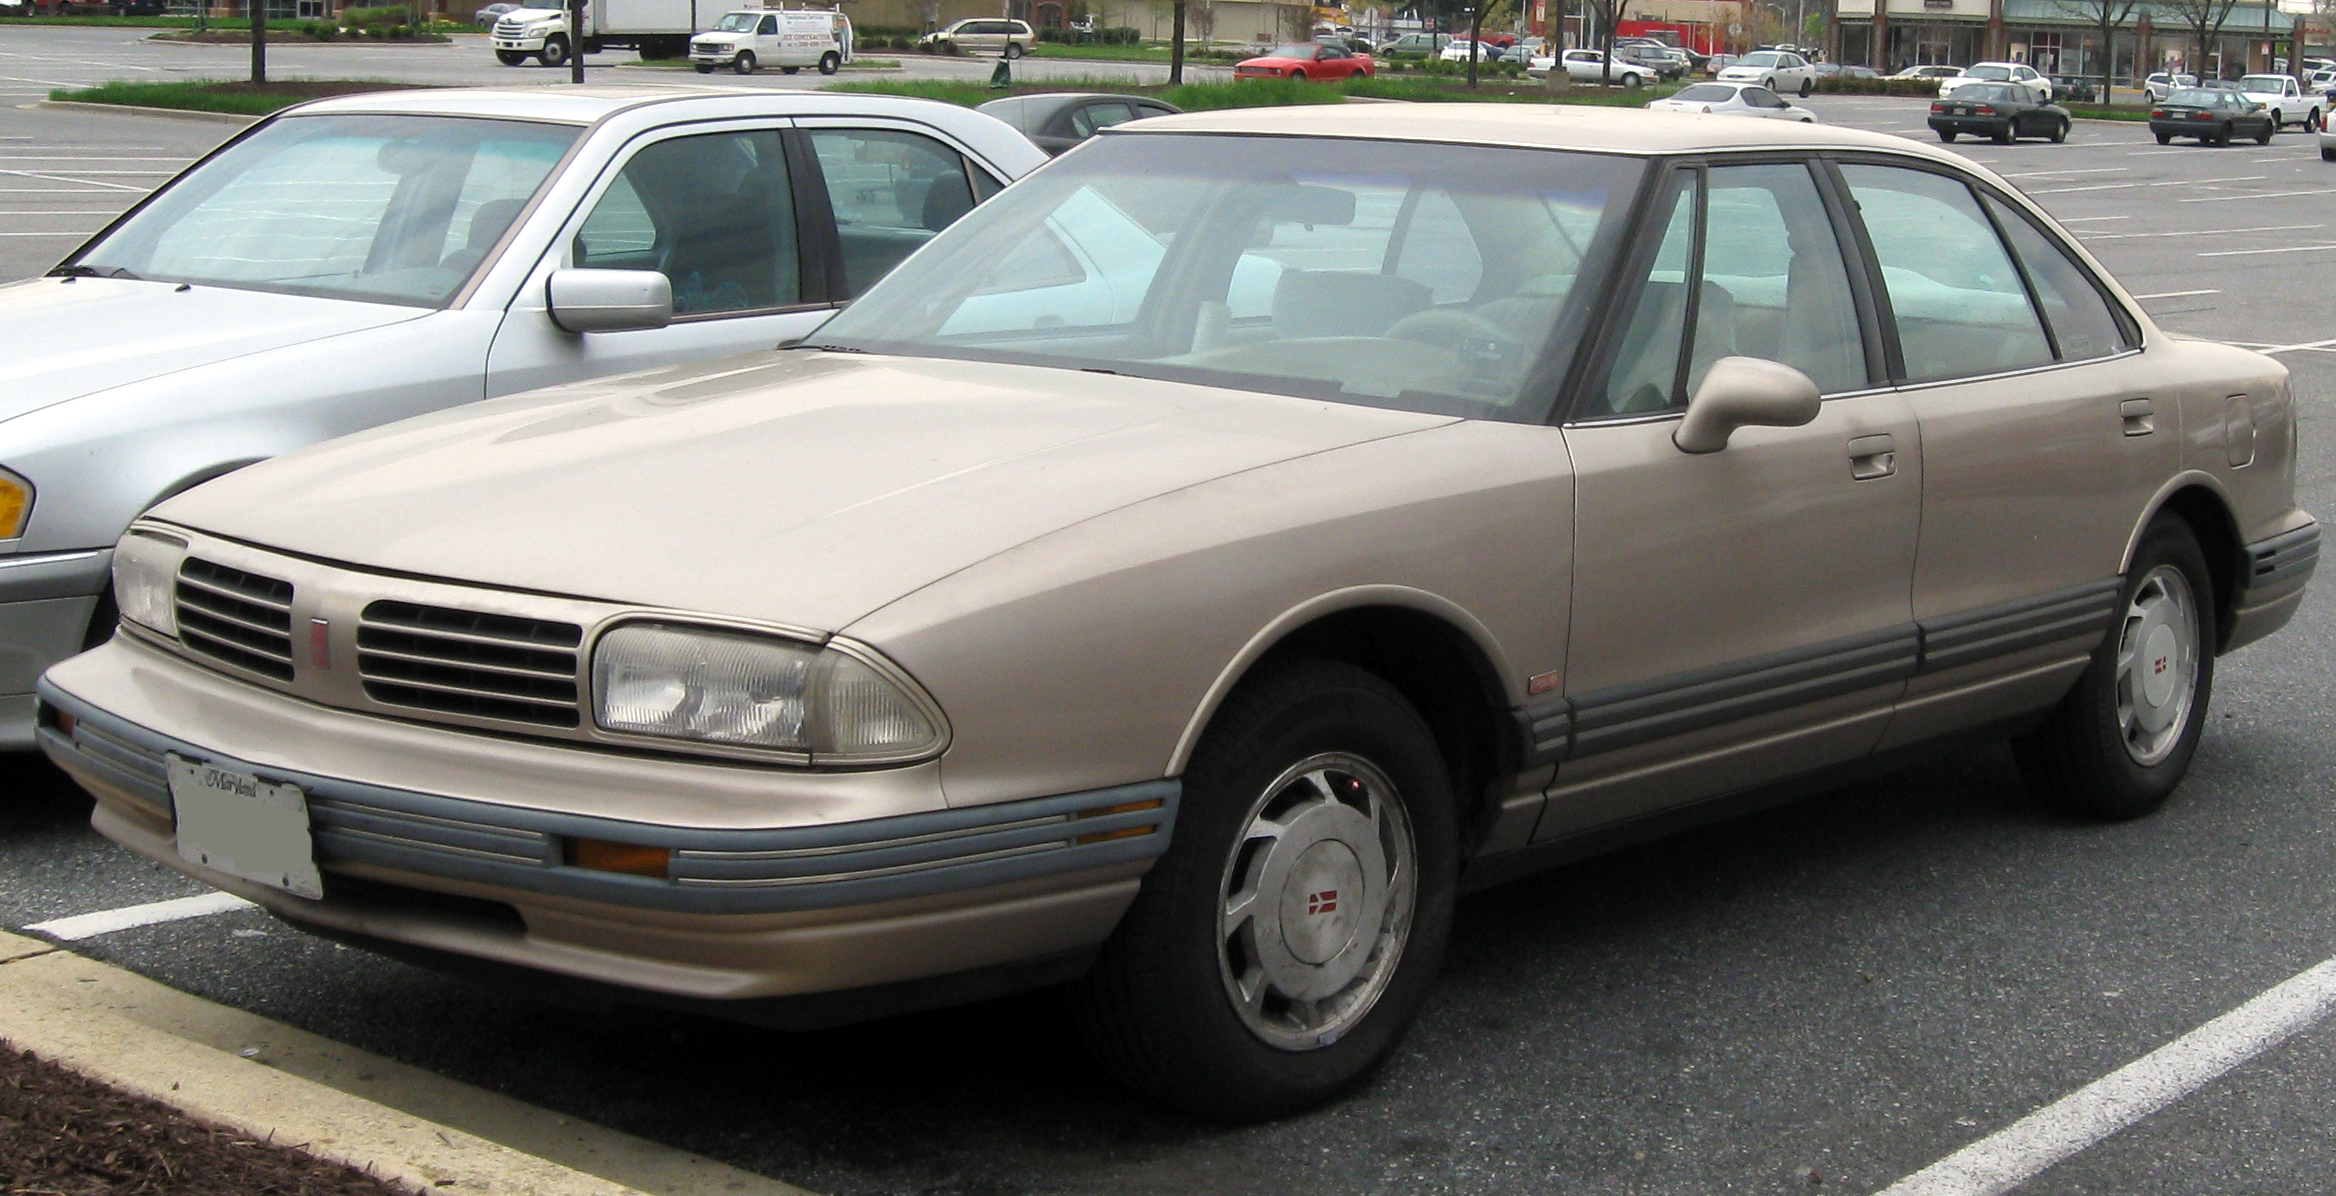 1999 oldsmobile eighty eight photos informations articles rh bestcarmag com 1997 Oldsmobile 88 Bypass Hose 1997 Buick LeSabre Engine Diagram